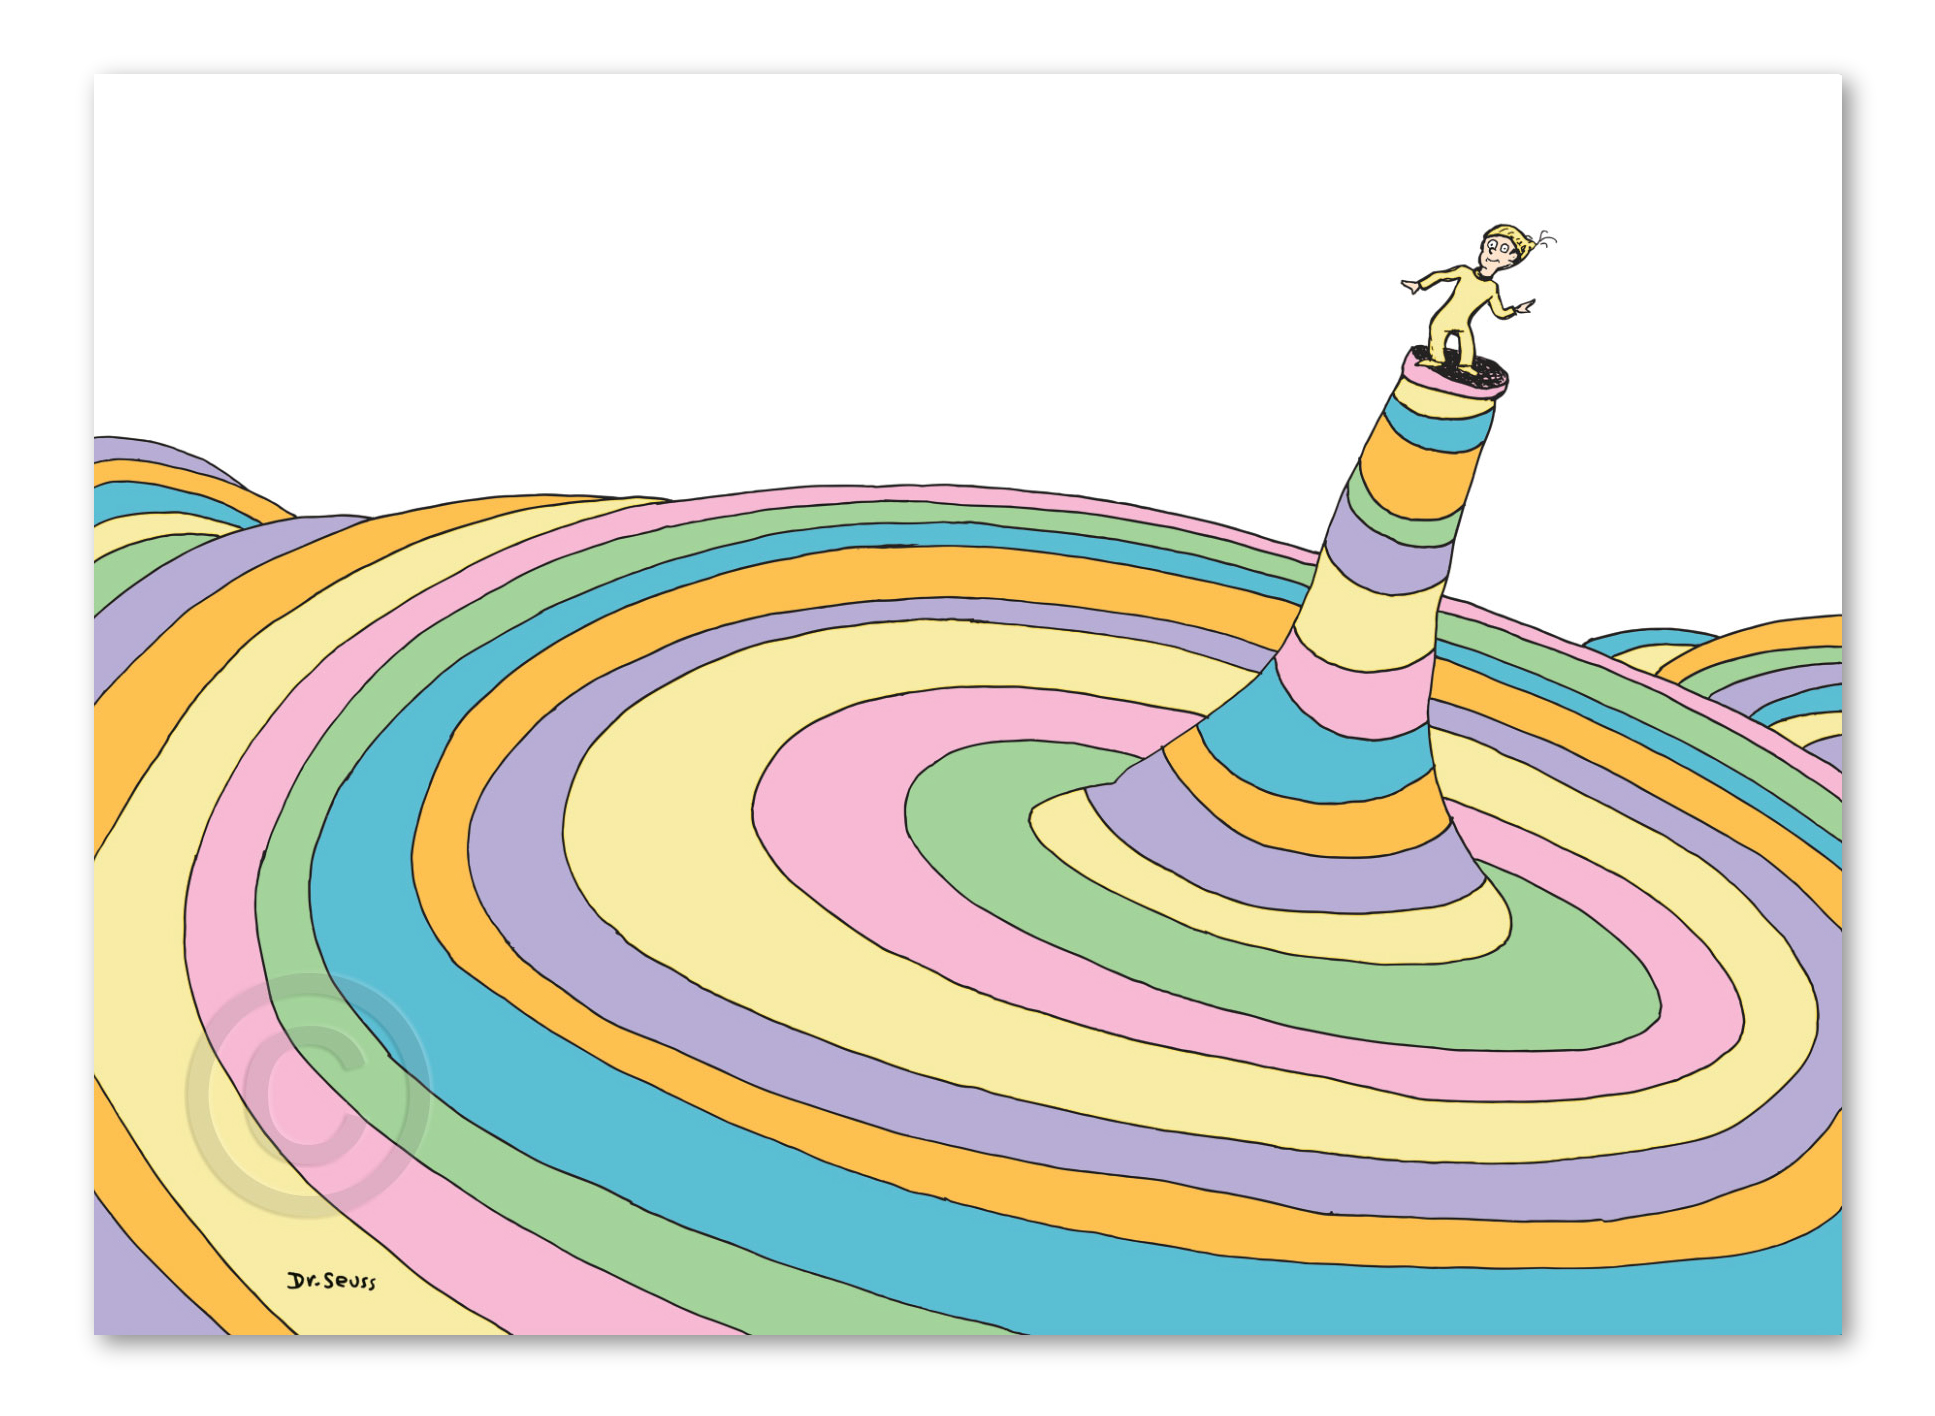 """Oh, the Places You'll Go! Cover Deluxe   Fine art pigment print on acid-free paper with deckled edges, image and paper size: 26"""" x 36""""  Limited edition of 850 prints numbered 1/850 – 850/850 and 155 Collaborators' Proofs numbered CP 1/155 – 155/155."""